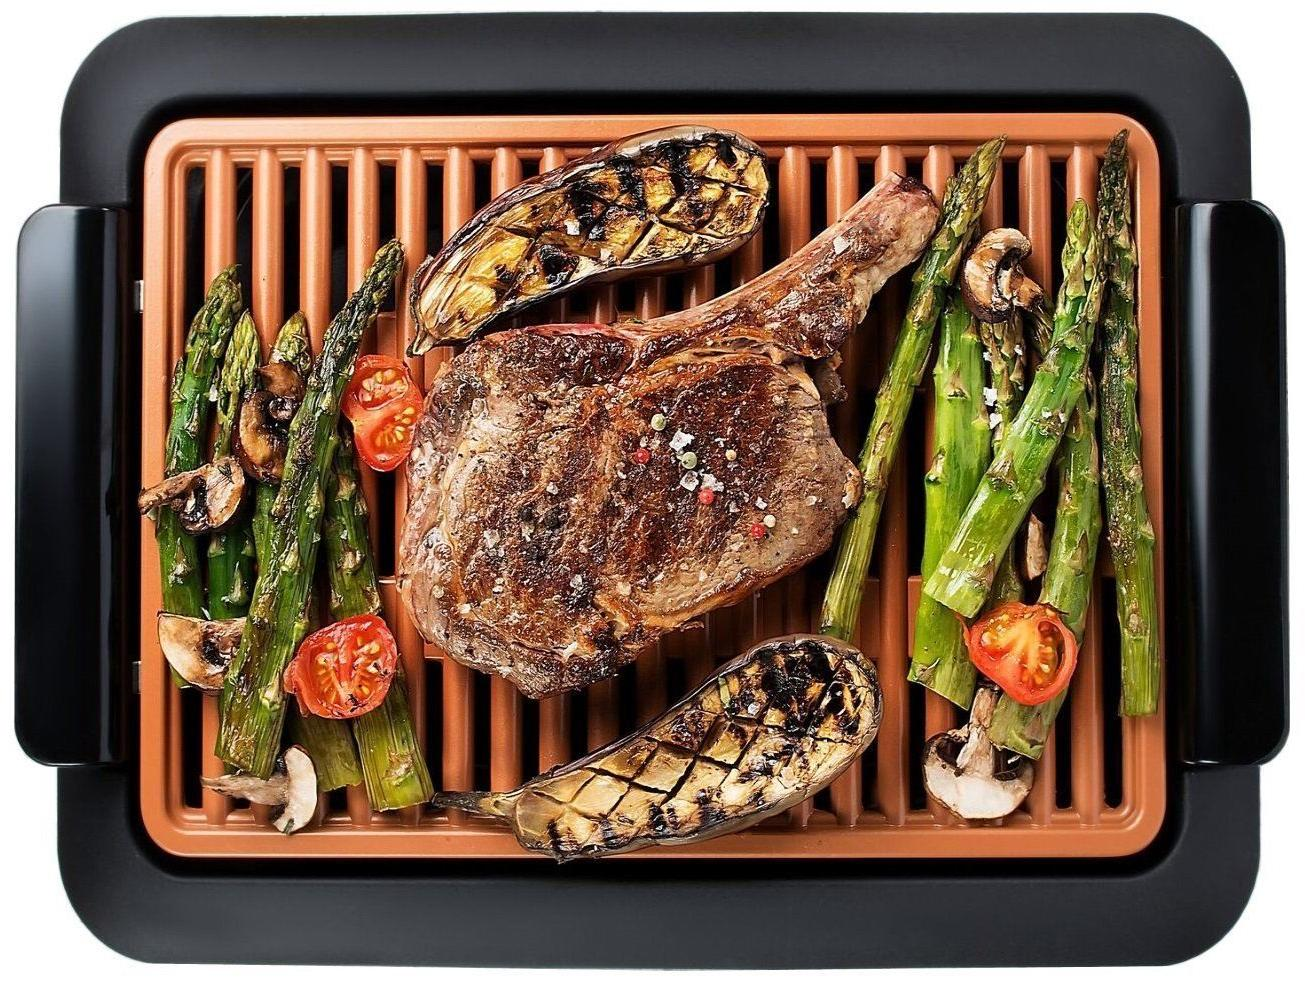 Gotham Steel Smokeless Electric Indoor Grill -Nonstick & Por